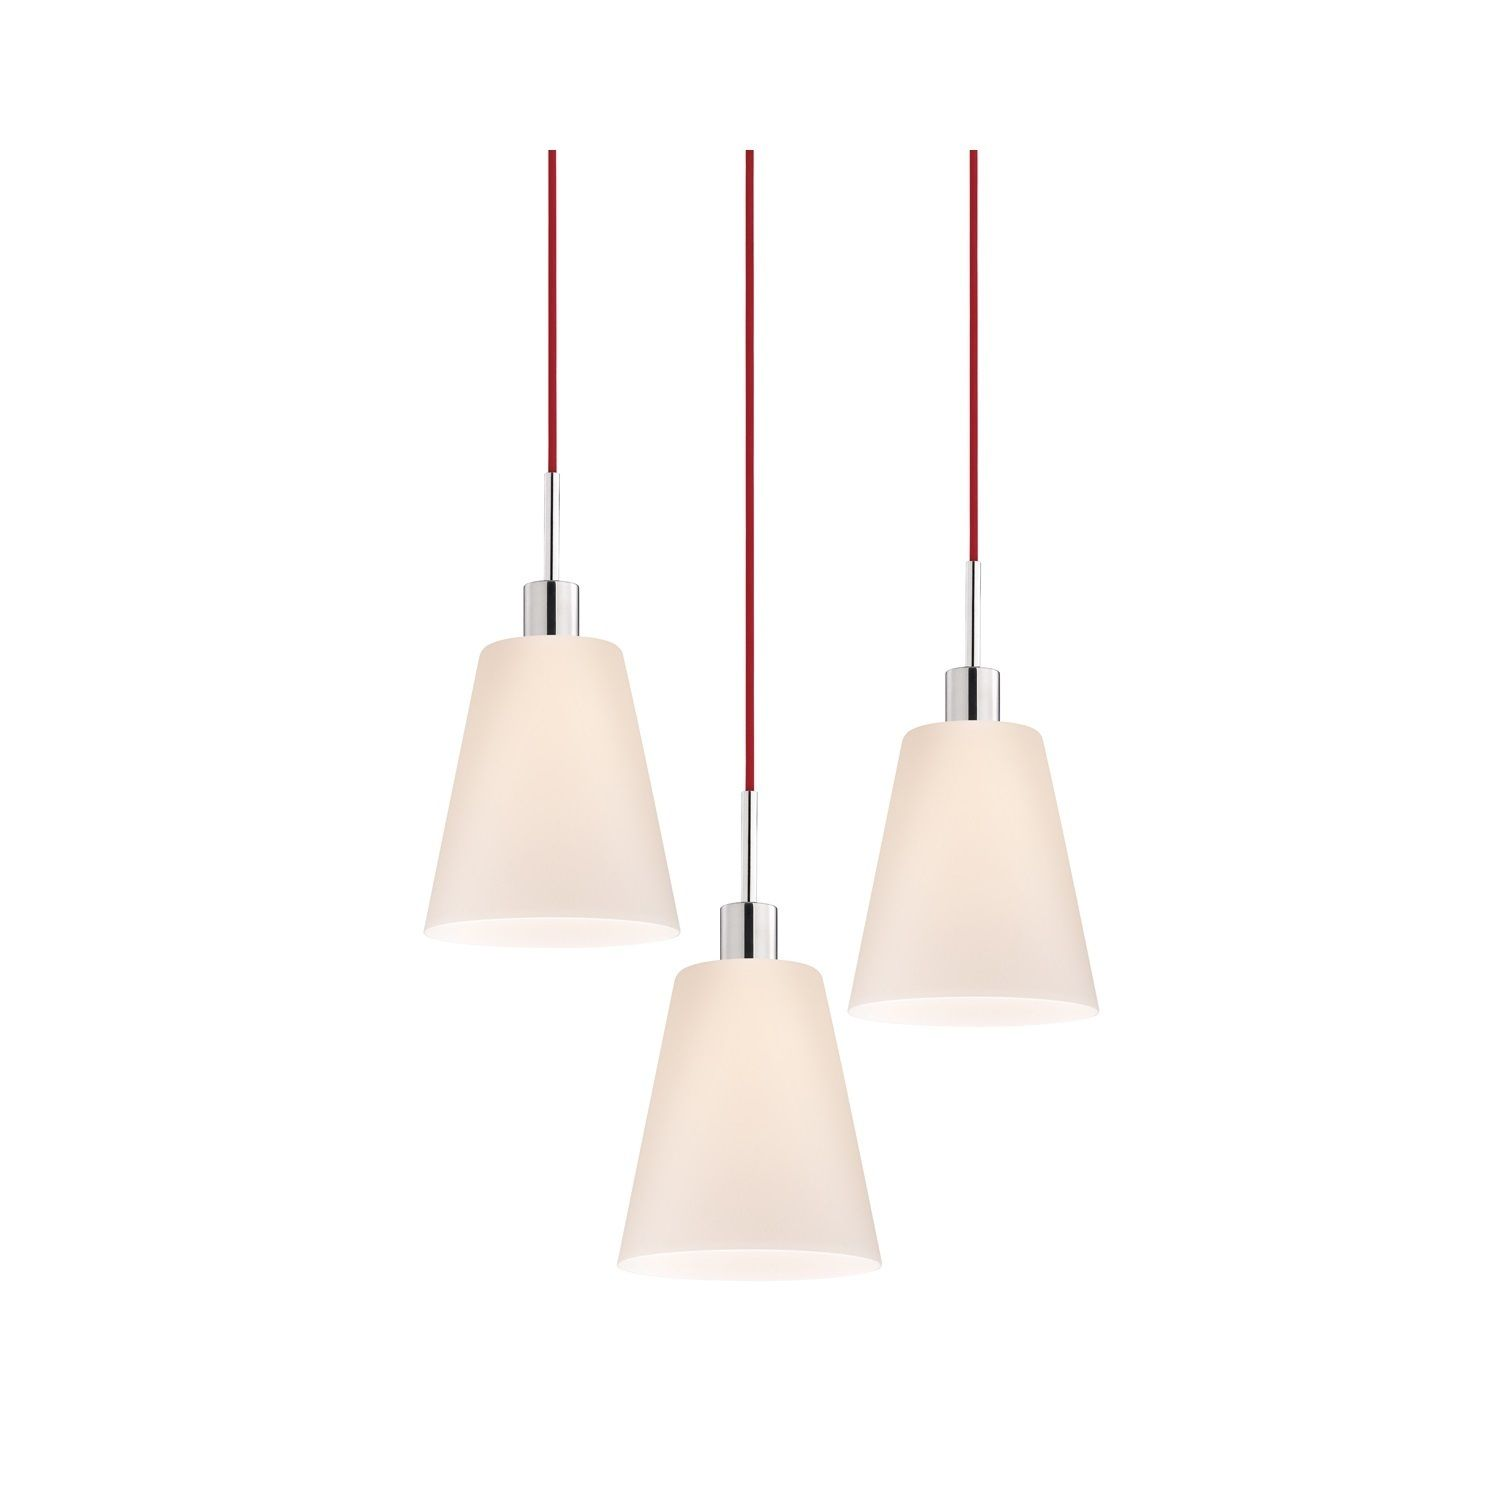 Sonneman Lighting Pendants - 3-light Polished Chrome Tall Cone Pendant with Red Cords